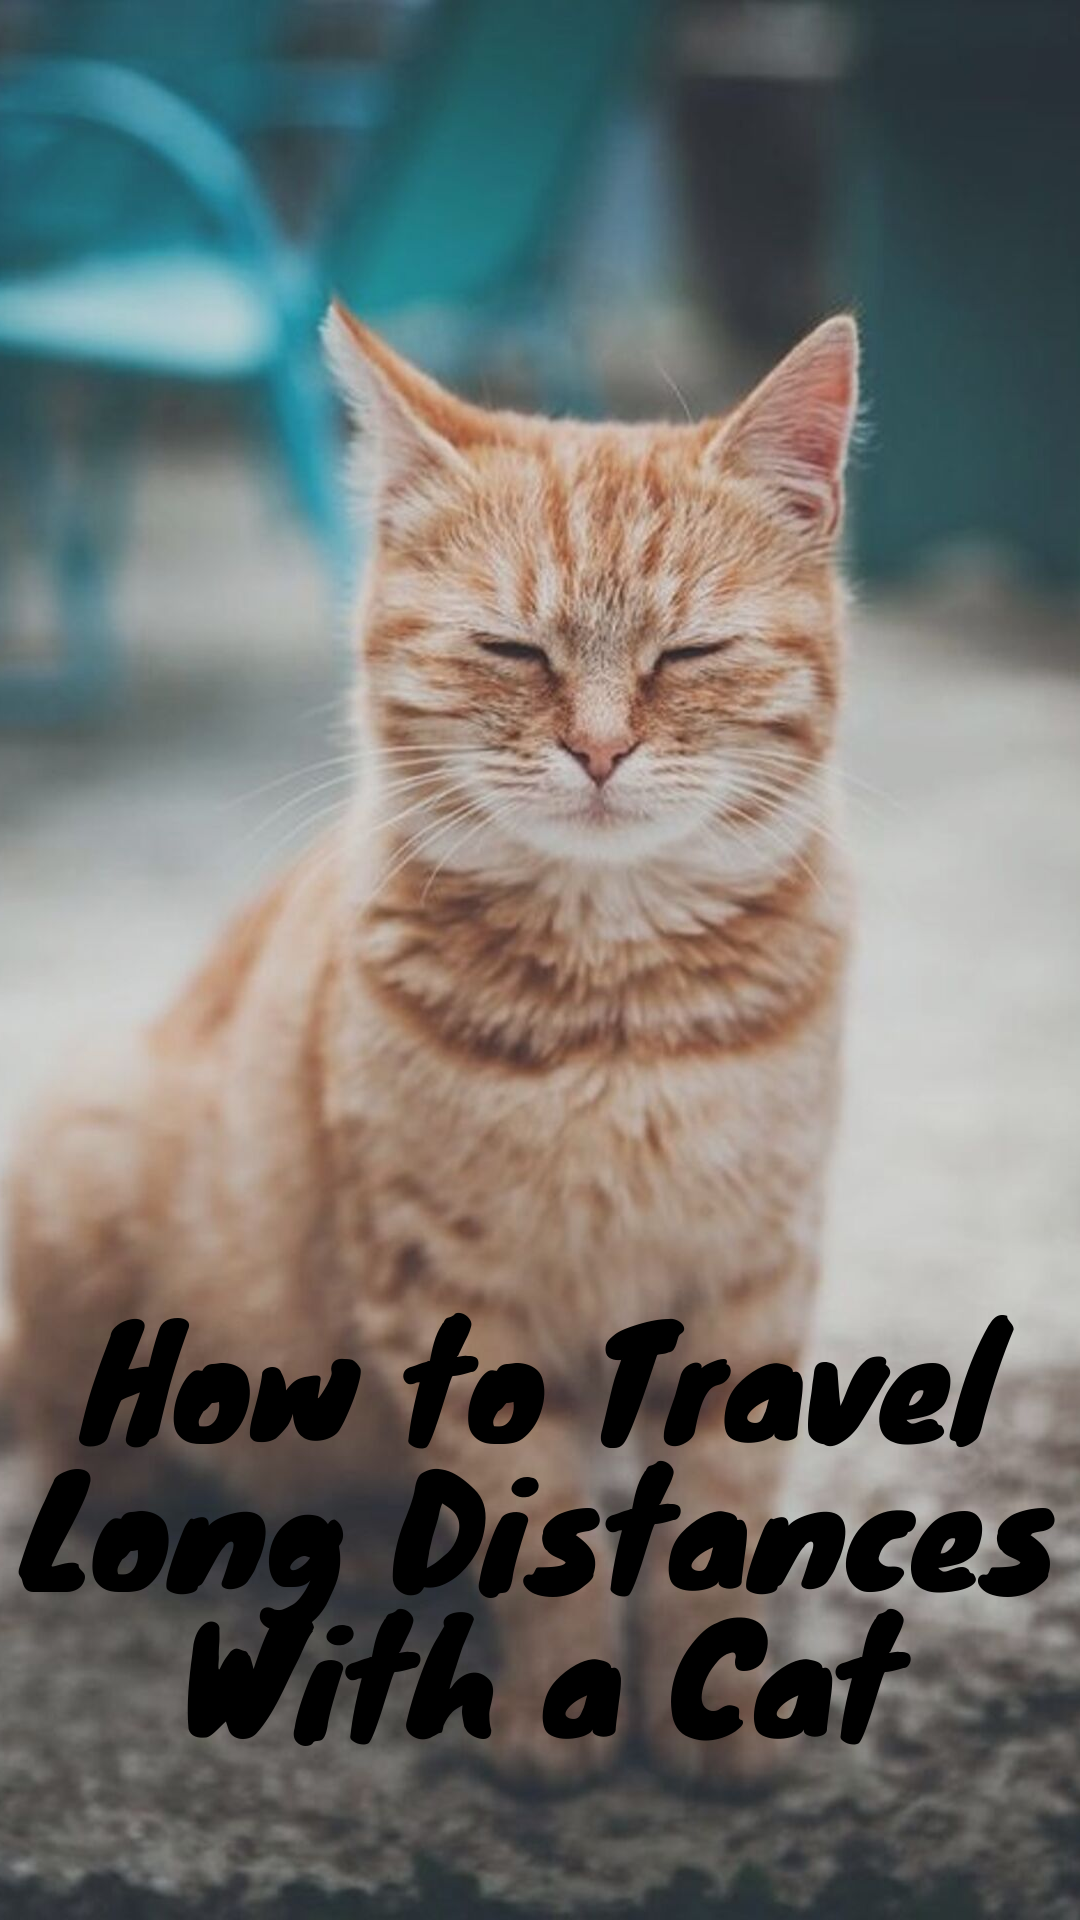 7 Tips To Travel Long Distances With Cats Cats Cat Facts Funny Cats